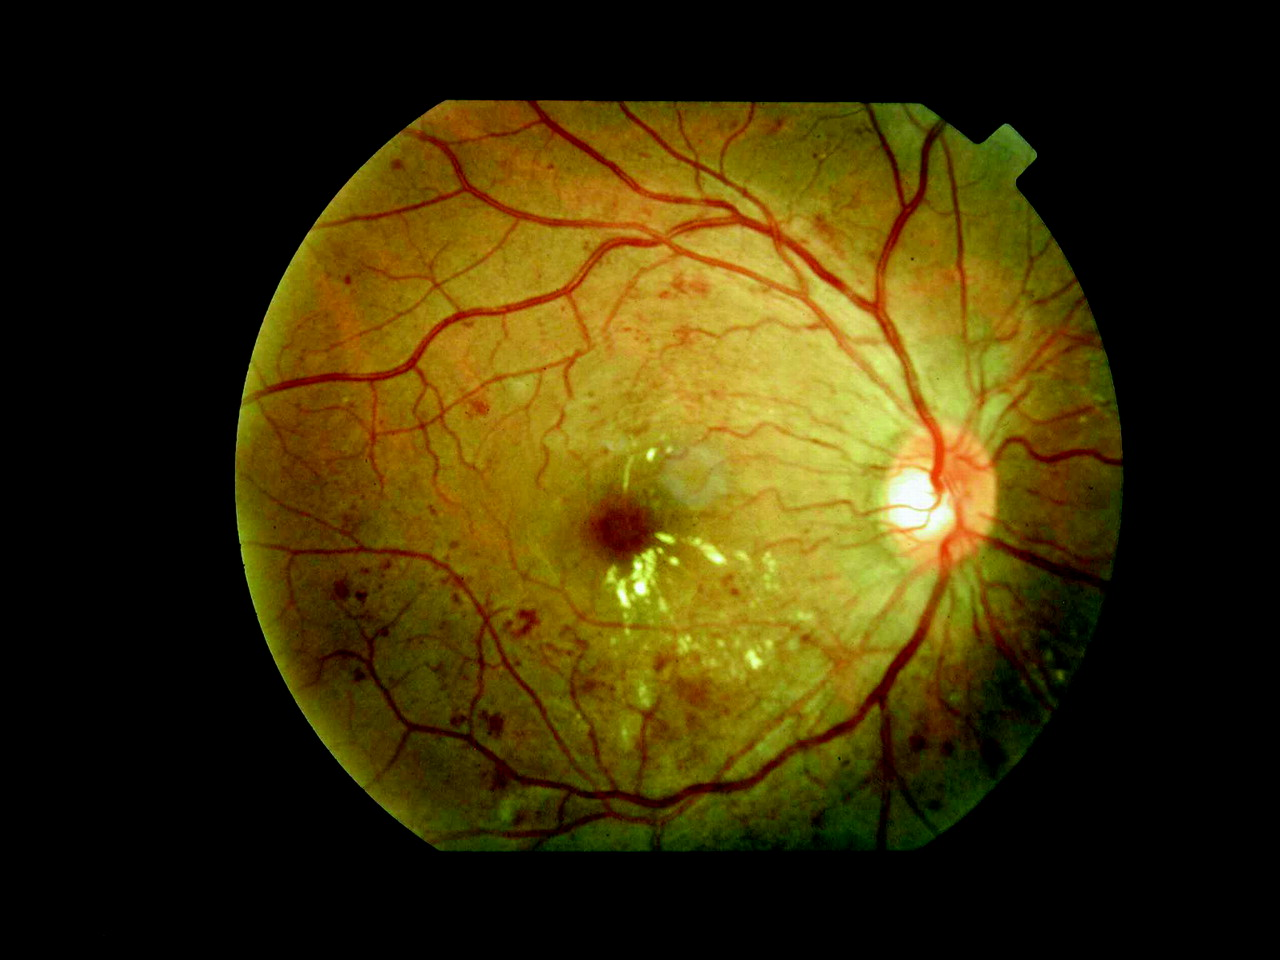 Diabetic Retinopathy Drugs Market